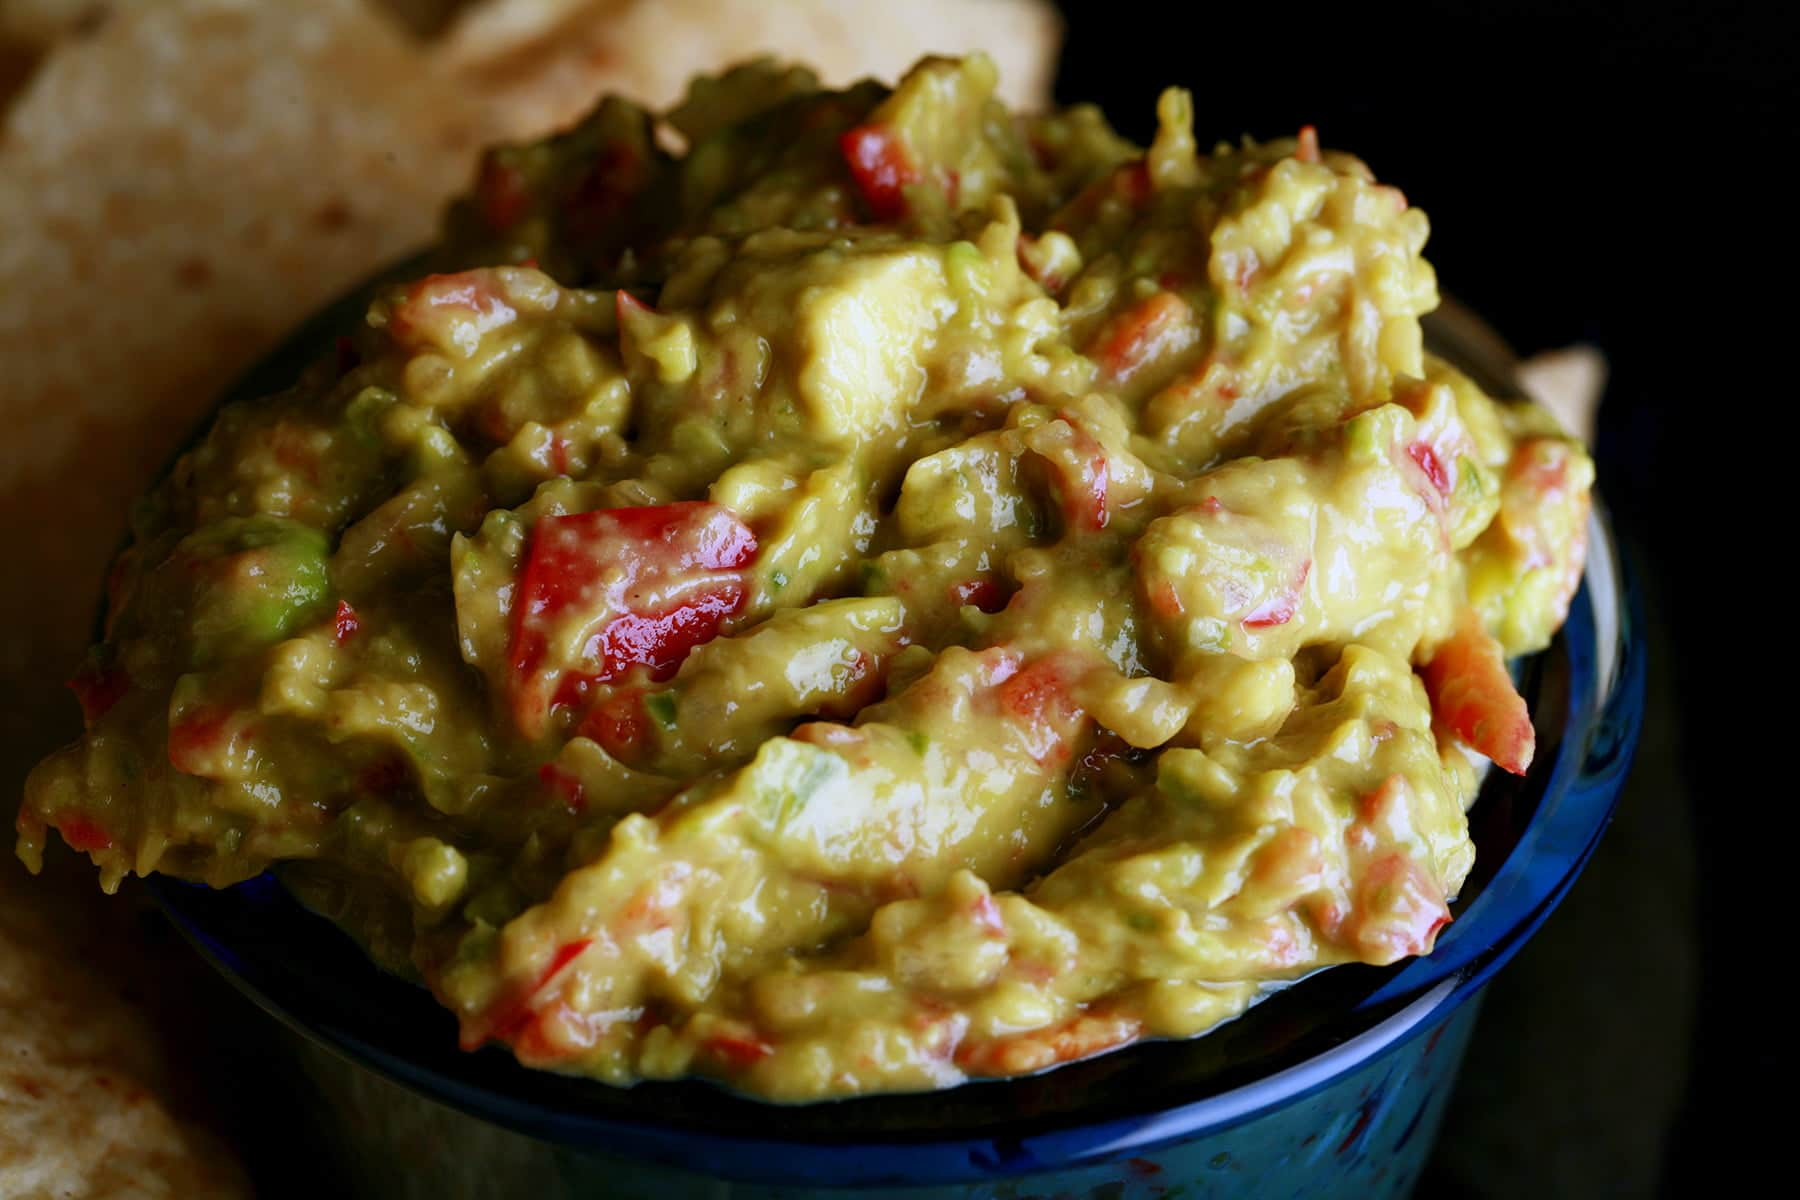 A plate of corn chips is shown with a bowl of chunky guacamole.